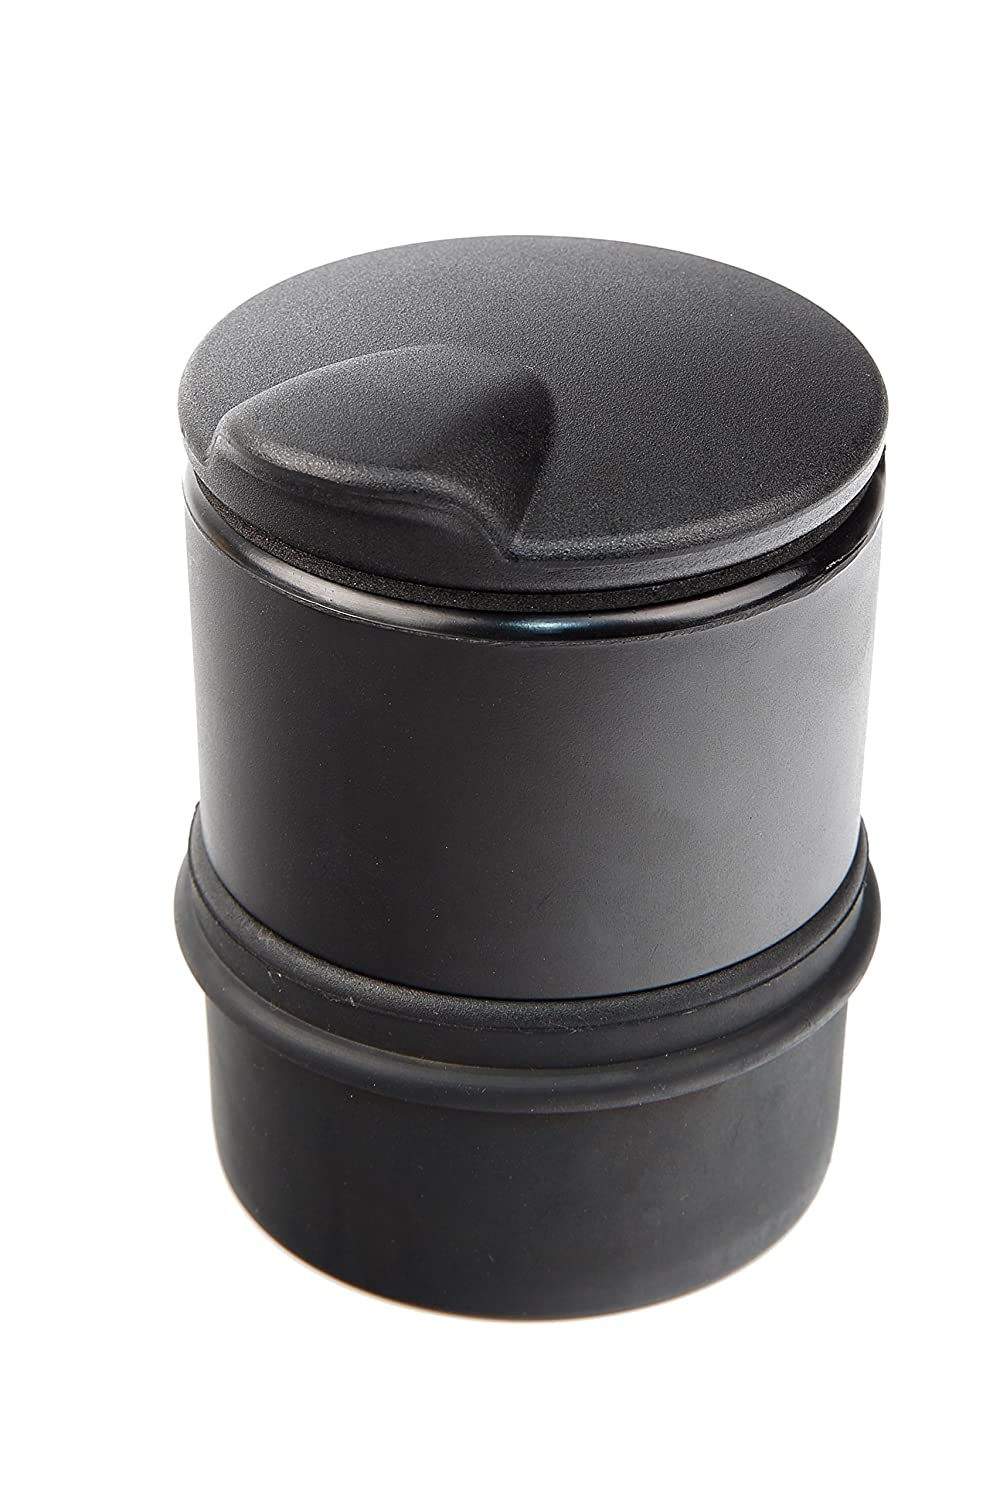 Chengjie Simple Design Portable PF bakelite Car Cigatettes Ashtray with or Without Holder Cover Yuyao Chengjie Building material CO Ltd 5559019346